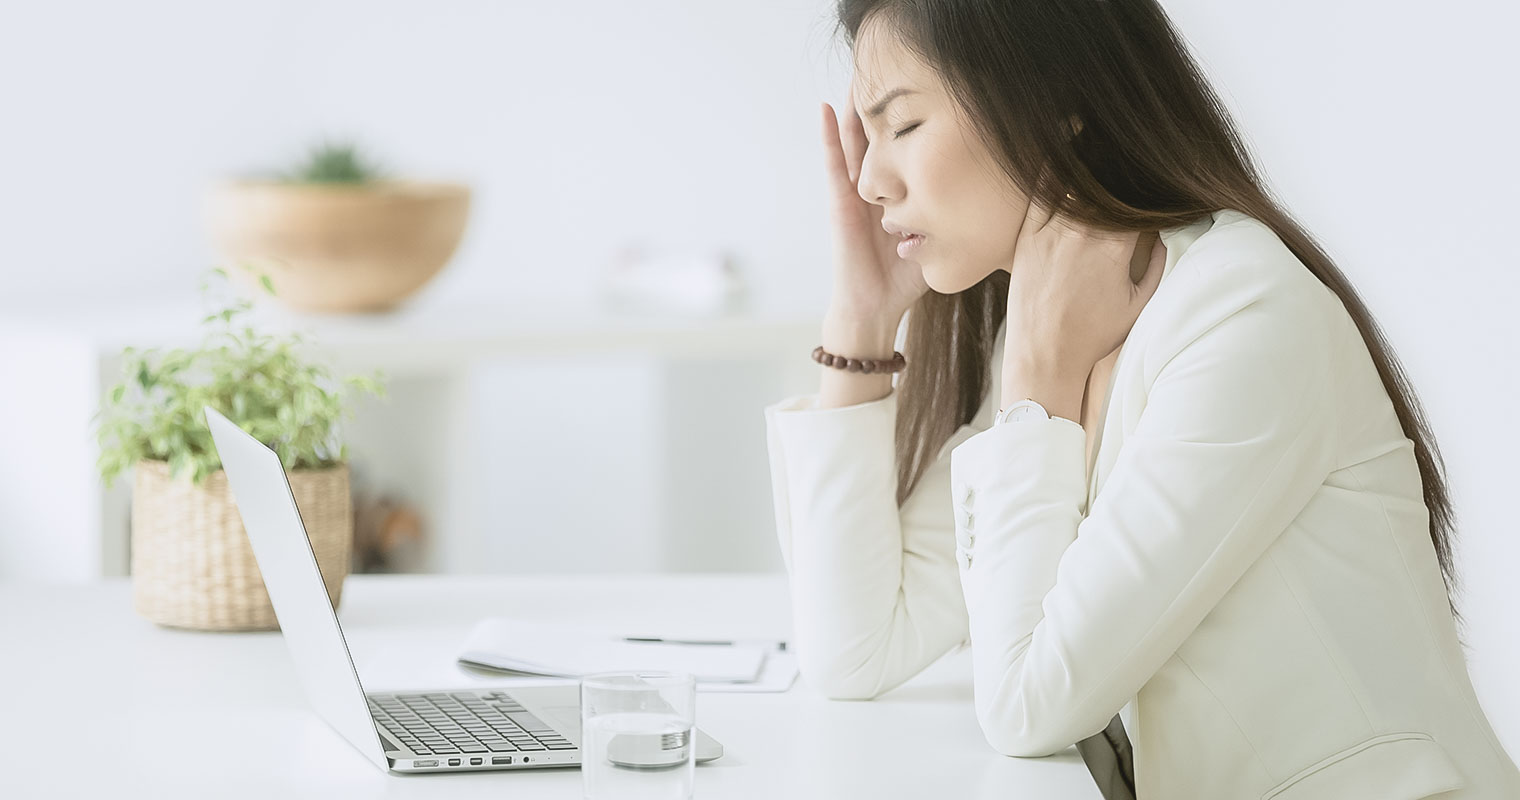 Stressed asian businesswoman having headache at work concept, frustrated dizzy chinese woman touching temple tired of aching head or chronic fatigue in office, korean employee feels strong migraine